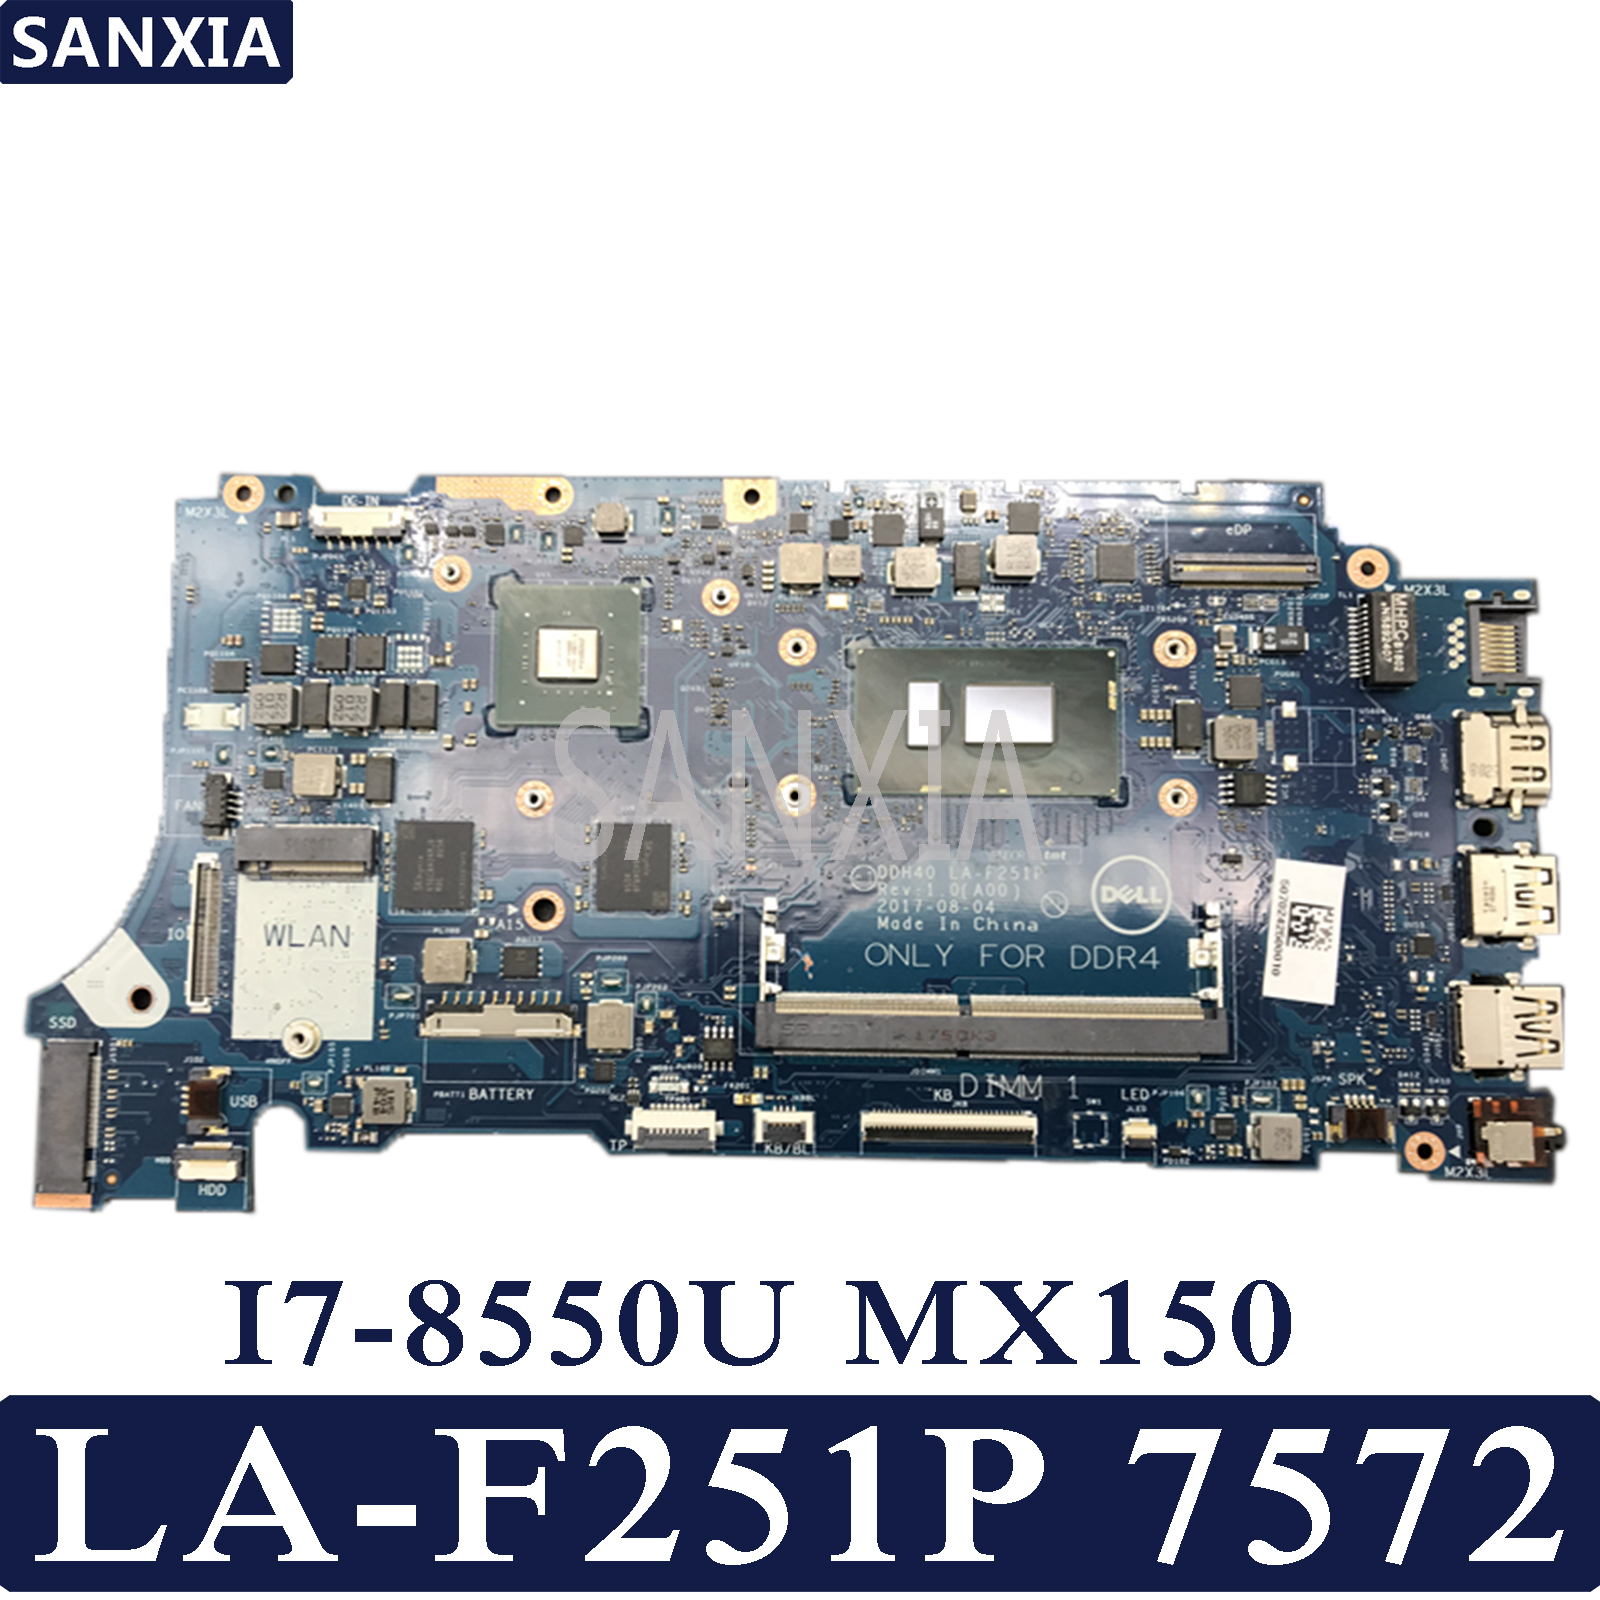 KEFU DDH40 LA-F251P <font><b>Laptop</b></font> motherboard for Dell Inspiron 7572 7472 Test original mainboard I7-8550U <font><b>MX150</b></font> image